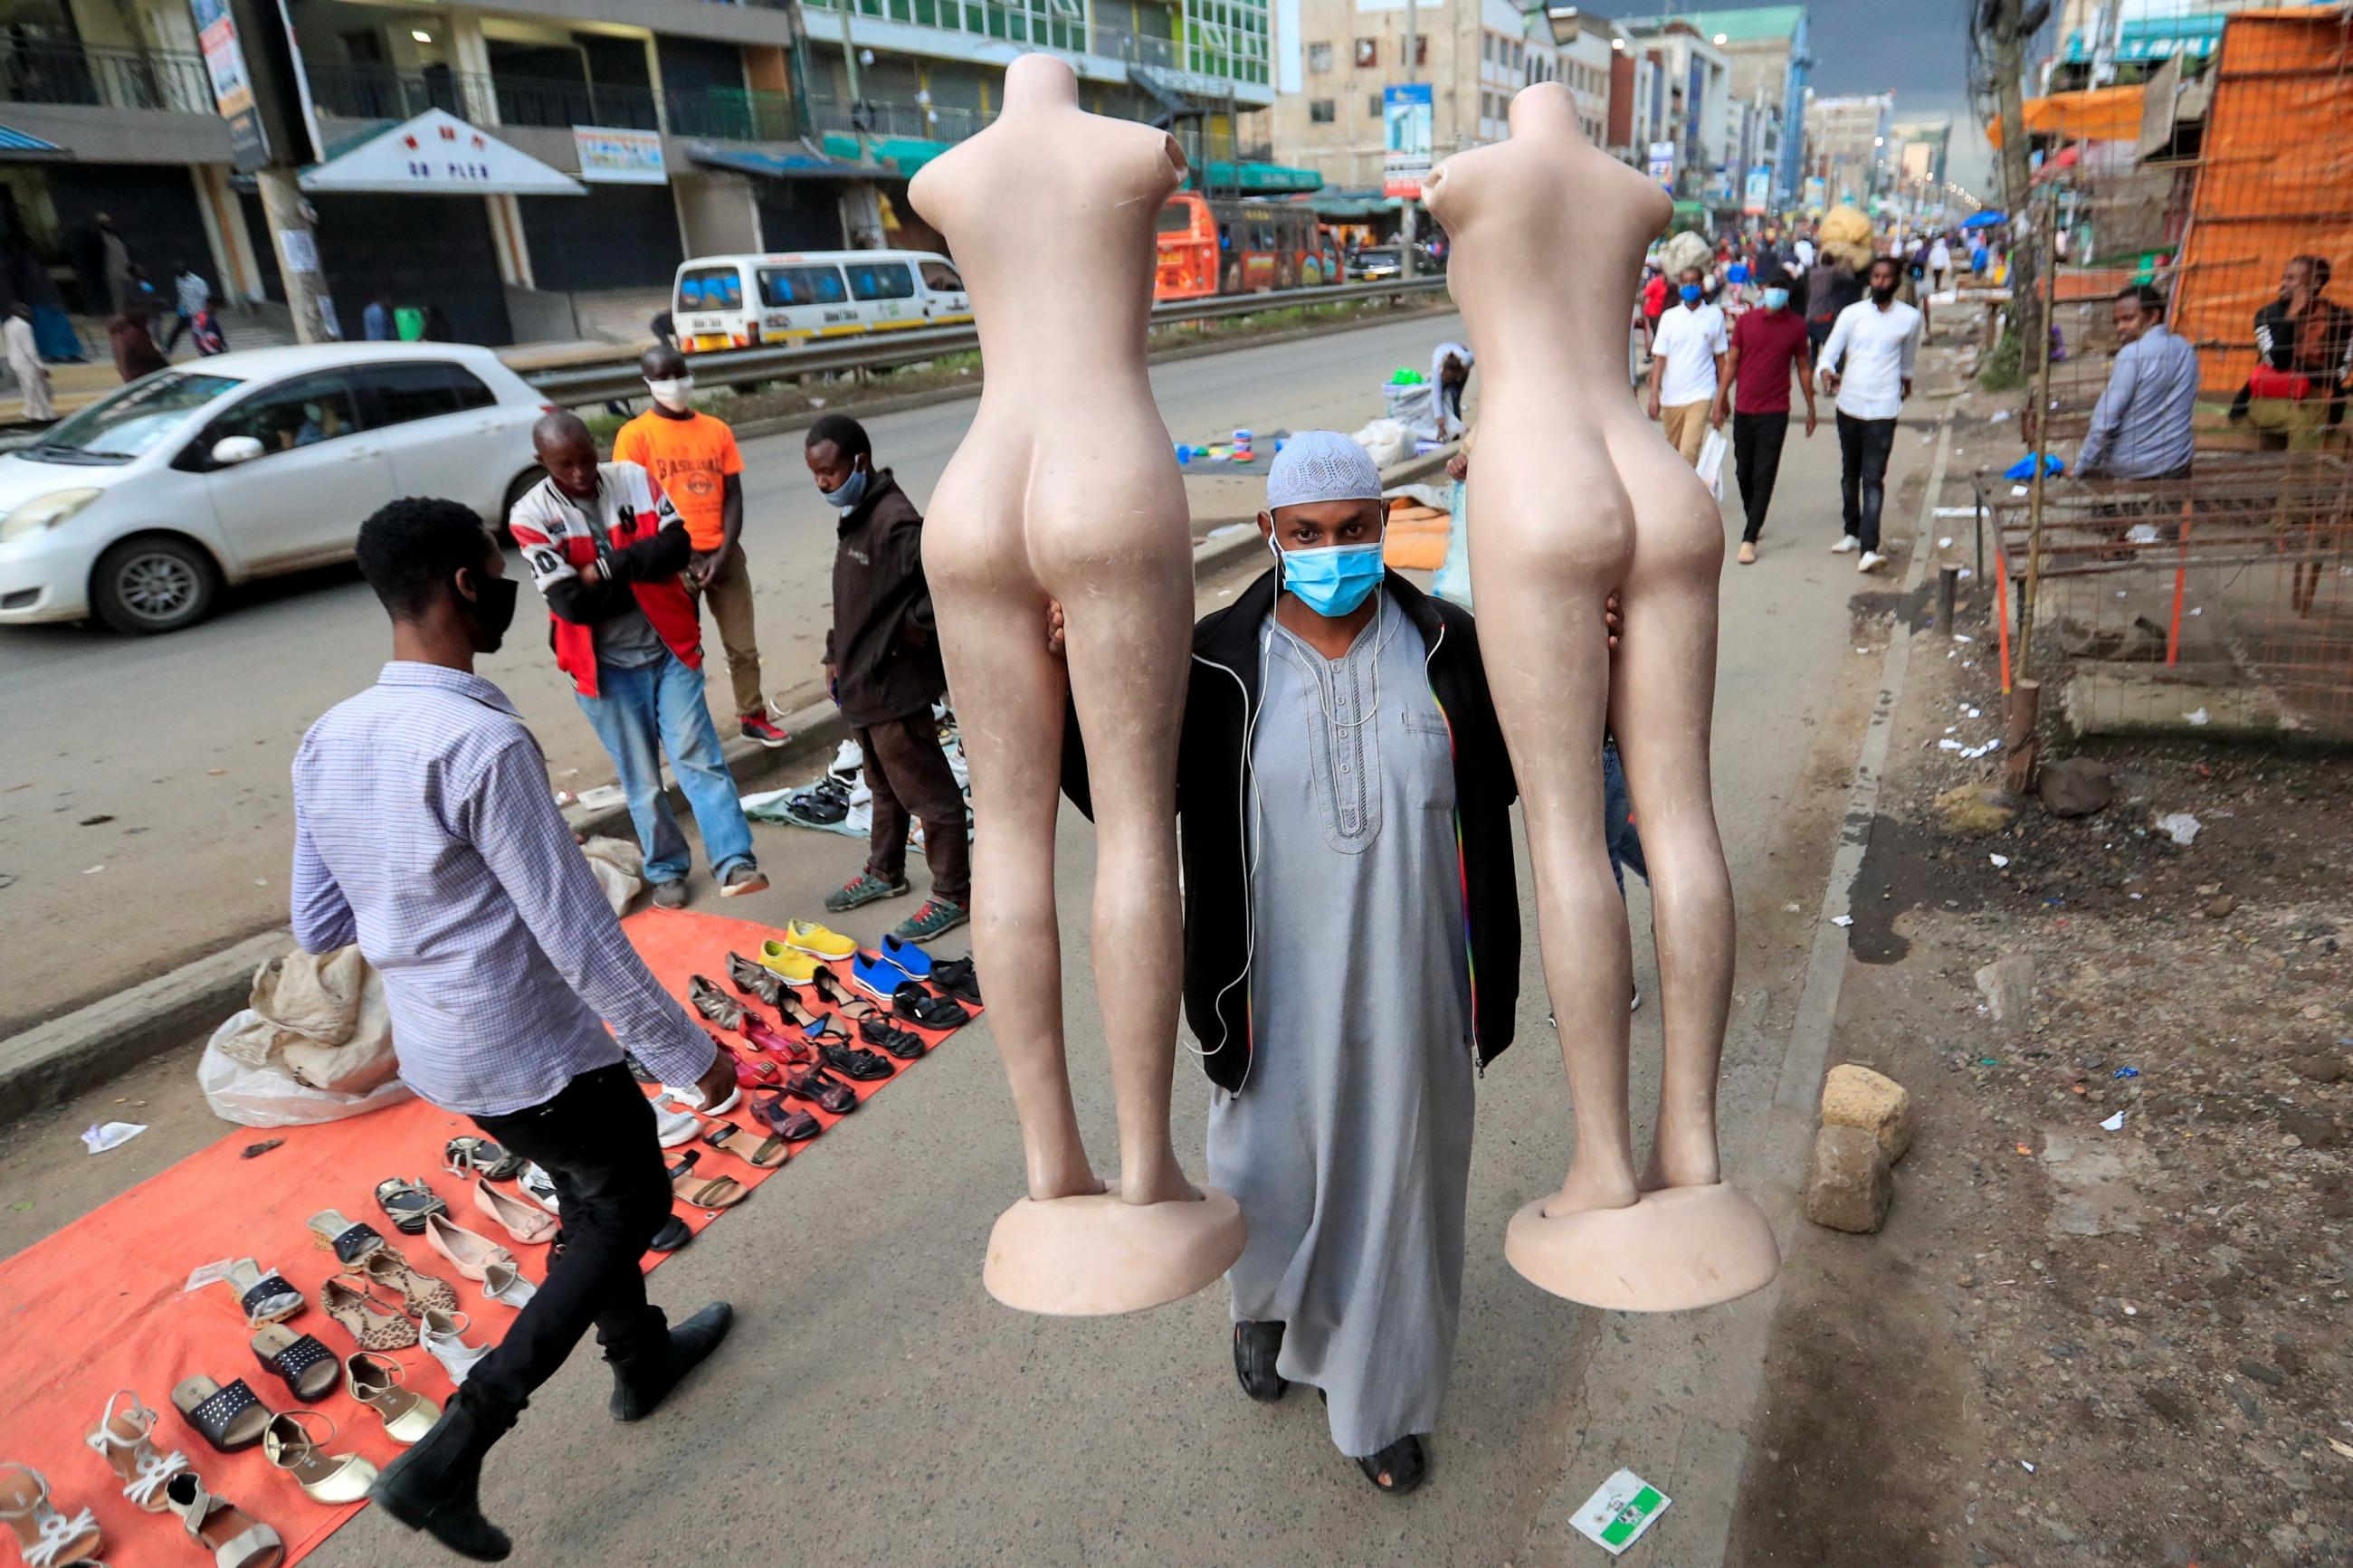 A masked-trader carriers two female-form mannequins as he closes his business ahead of the lockdown resulting from the COVID-19 pandemic in Nairobi, Kenya.